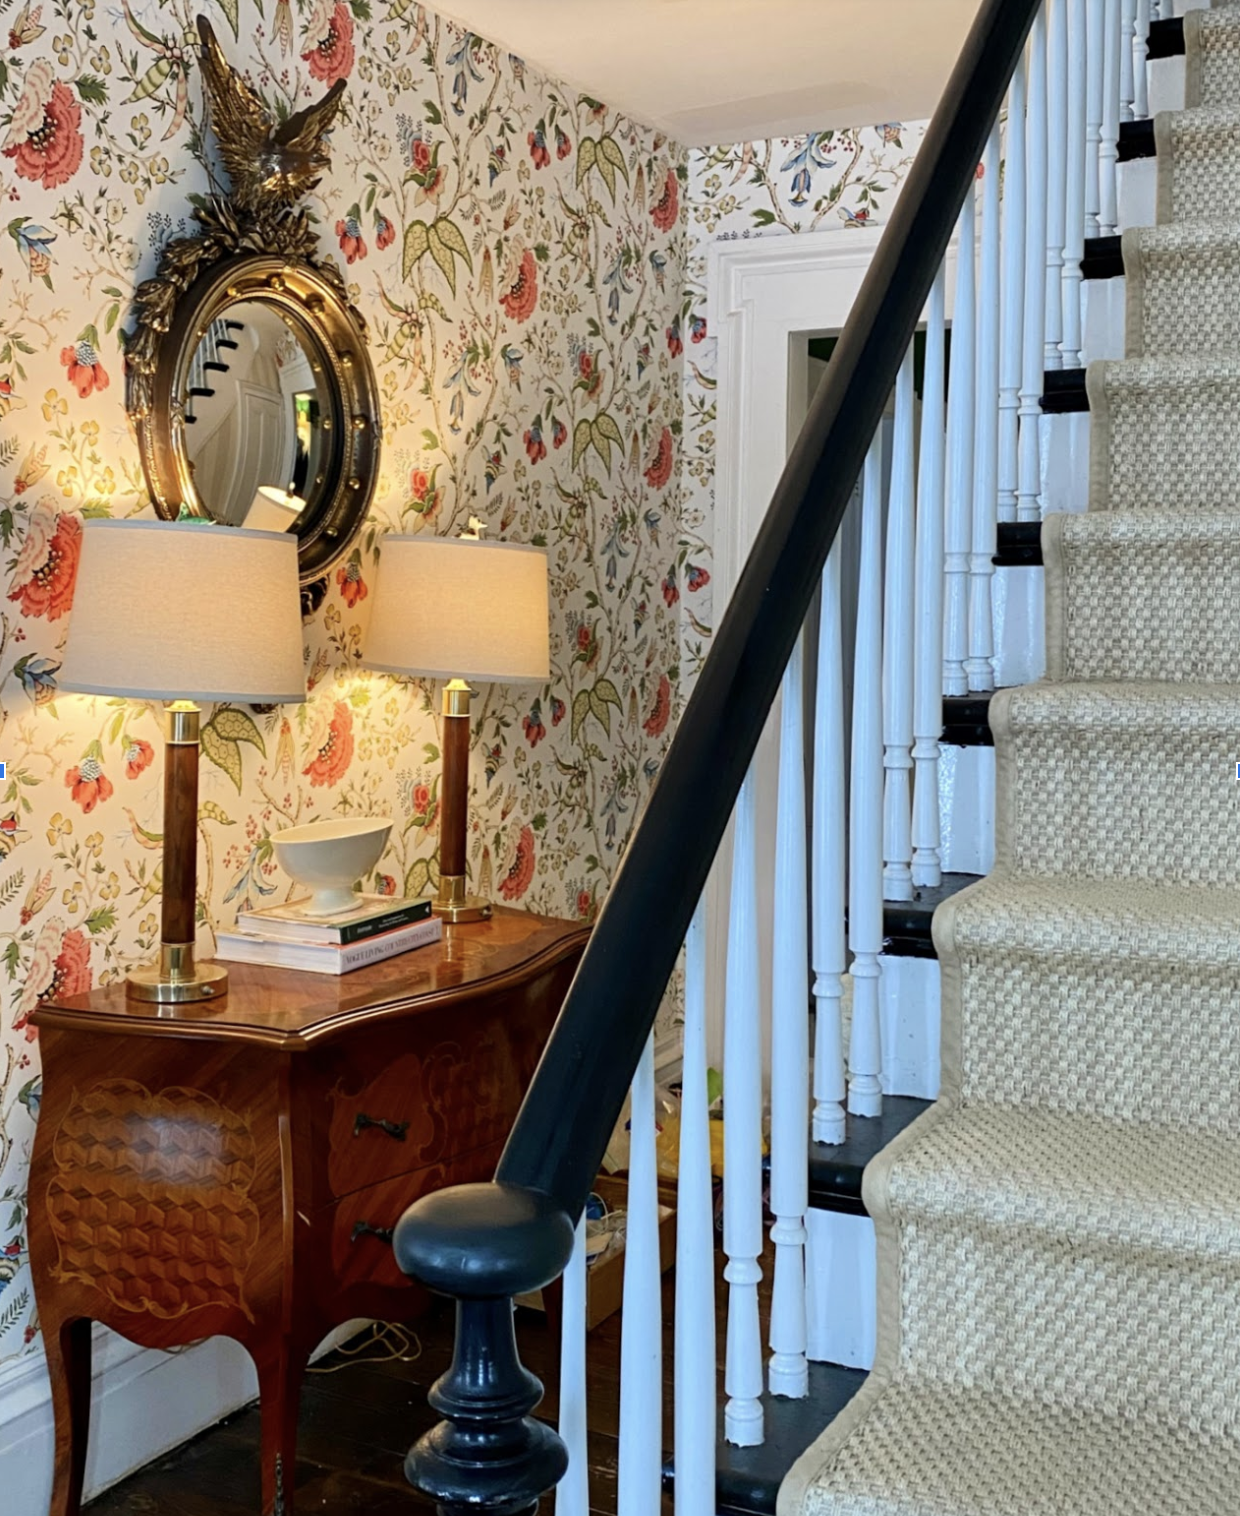 Beautiful foyer with colorful floral wallpaper in this 200 year old farmhouse